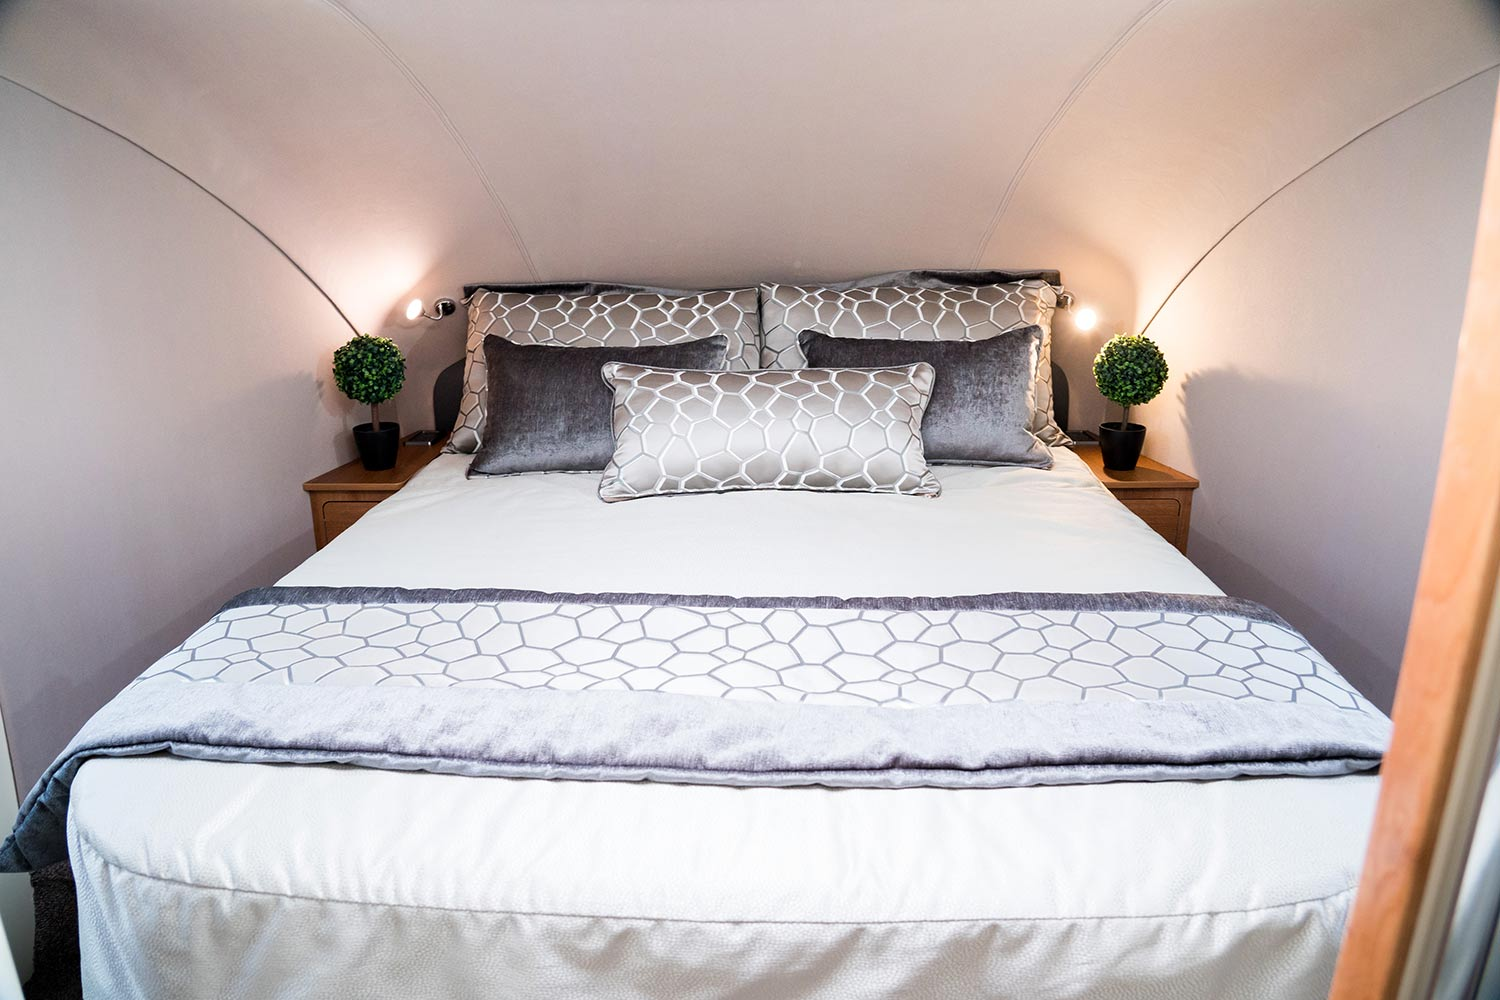 Fifth Wheel Co Dreamseeker bedroom